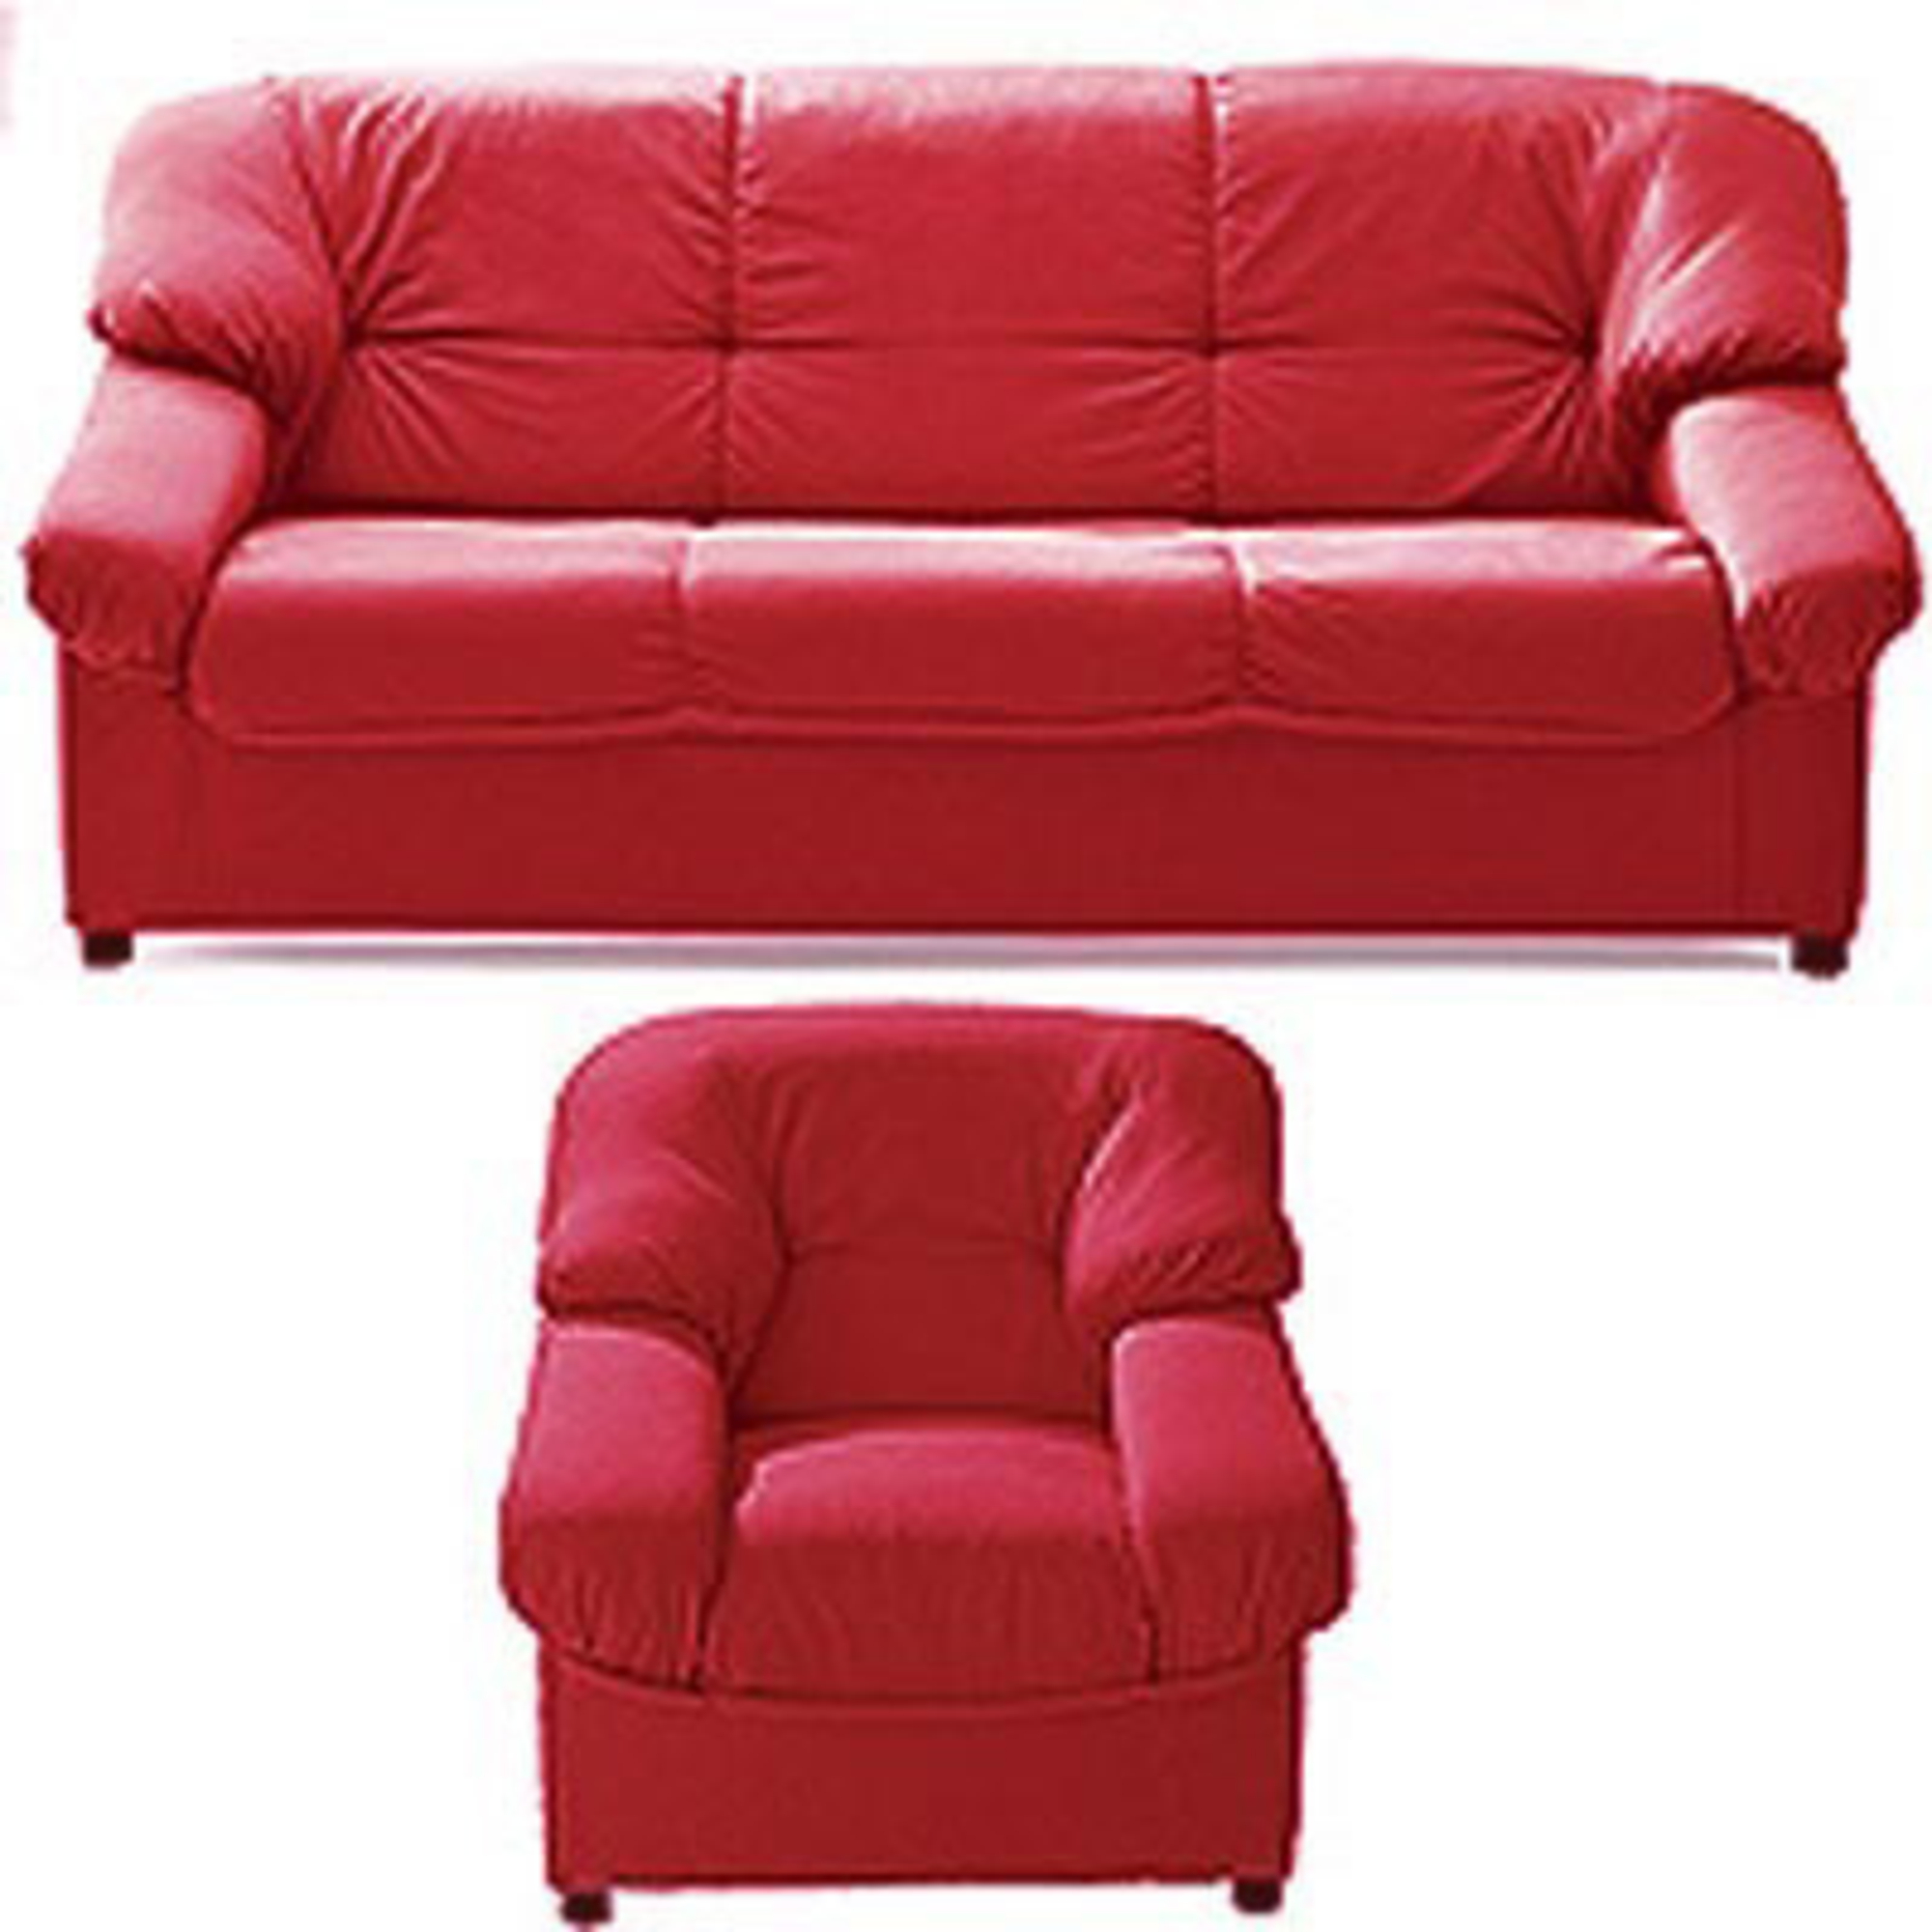 canap 3 places fixes fauteuil paloma tissu rouge. Black Bedroom Furniture Sets. Home Design Ideas